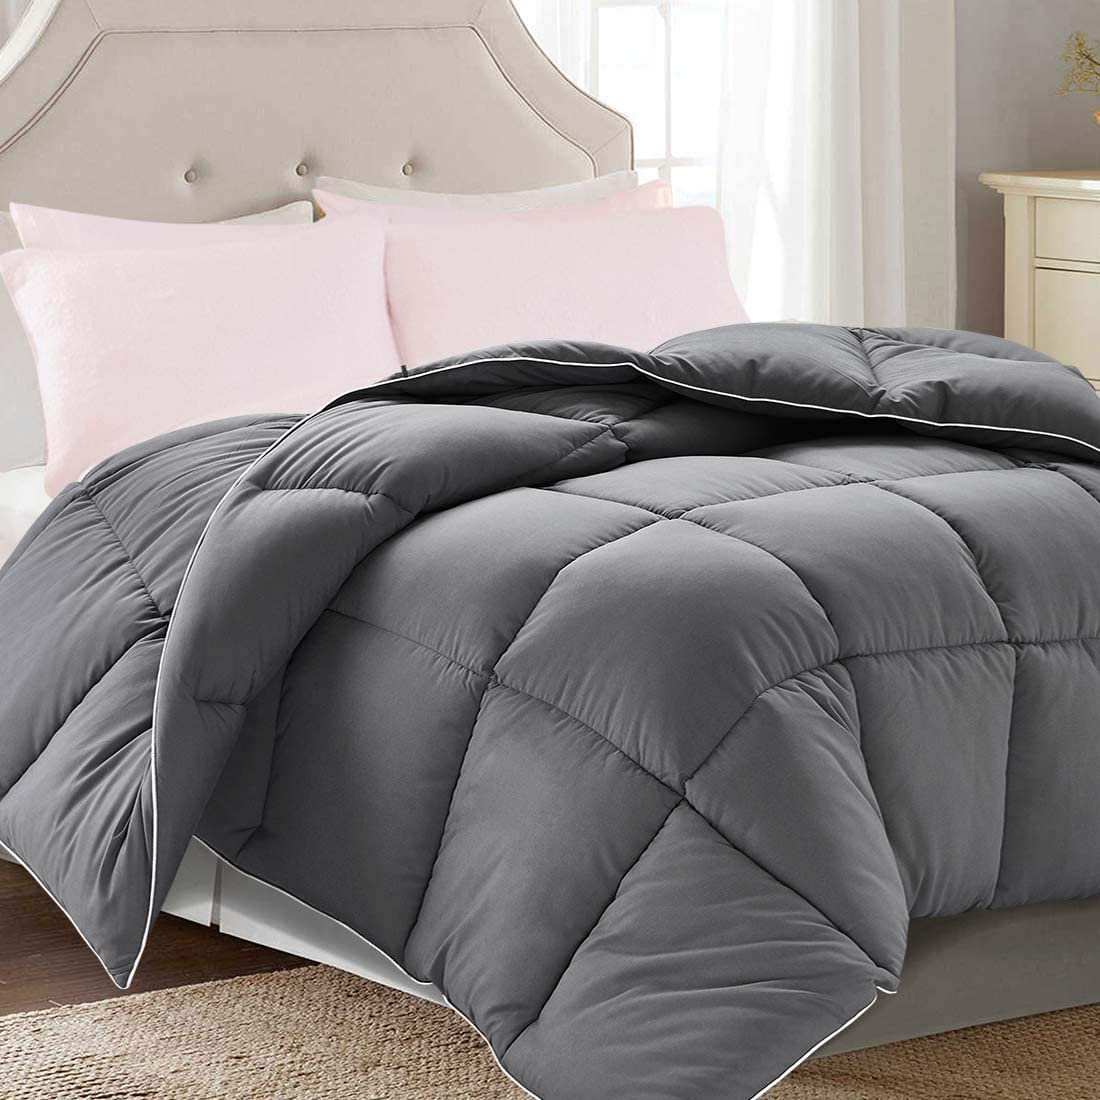 Premium Brushed Down Alternative Comforter Duvet Insert All Season 13 Colors